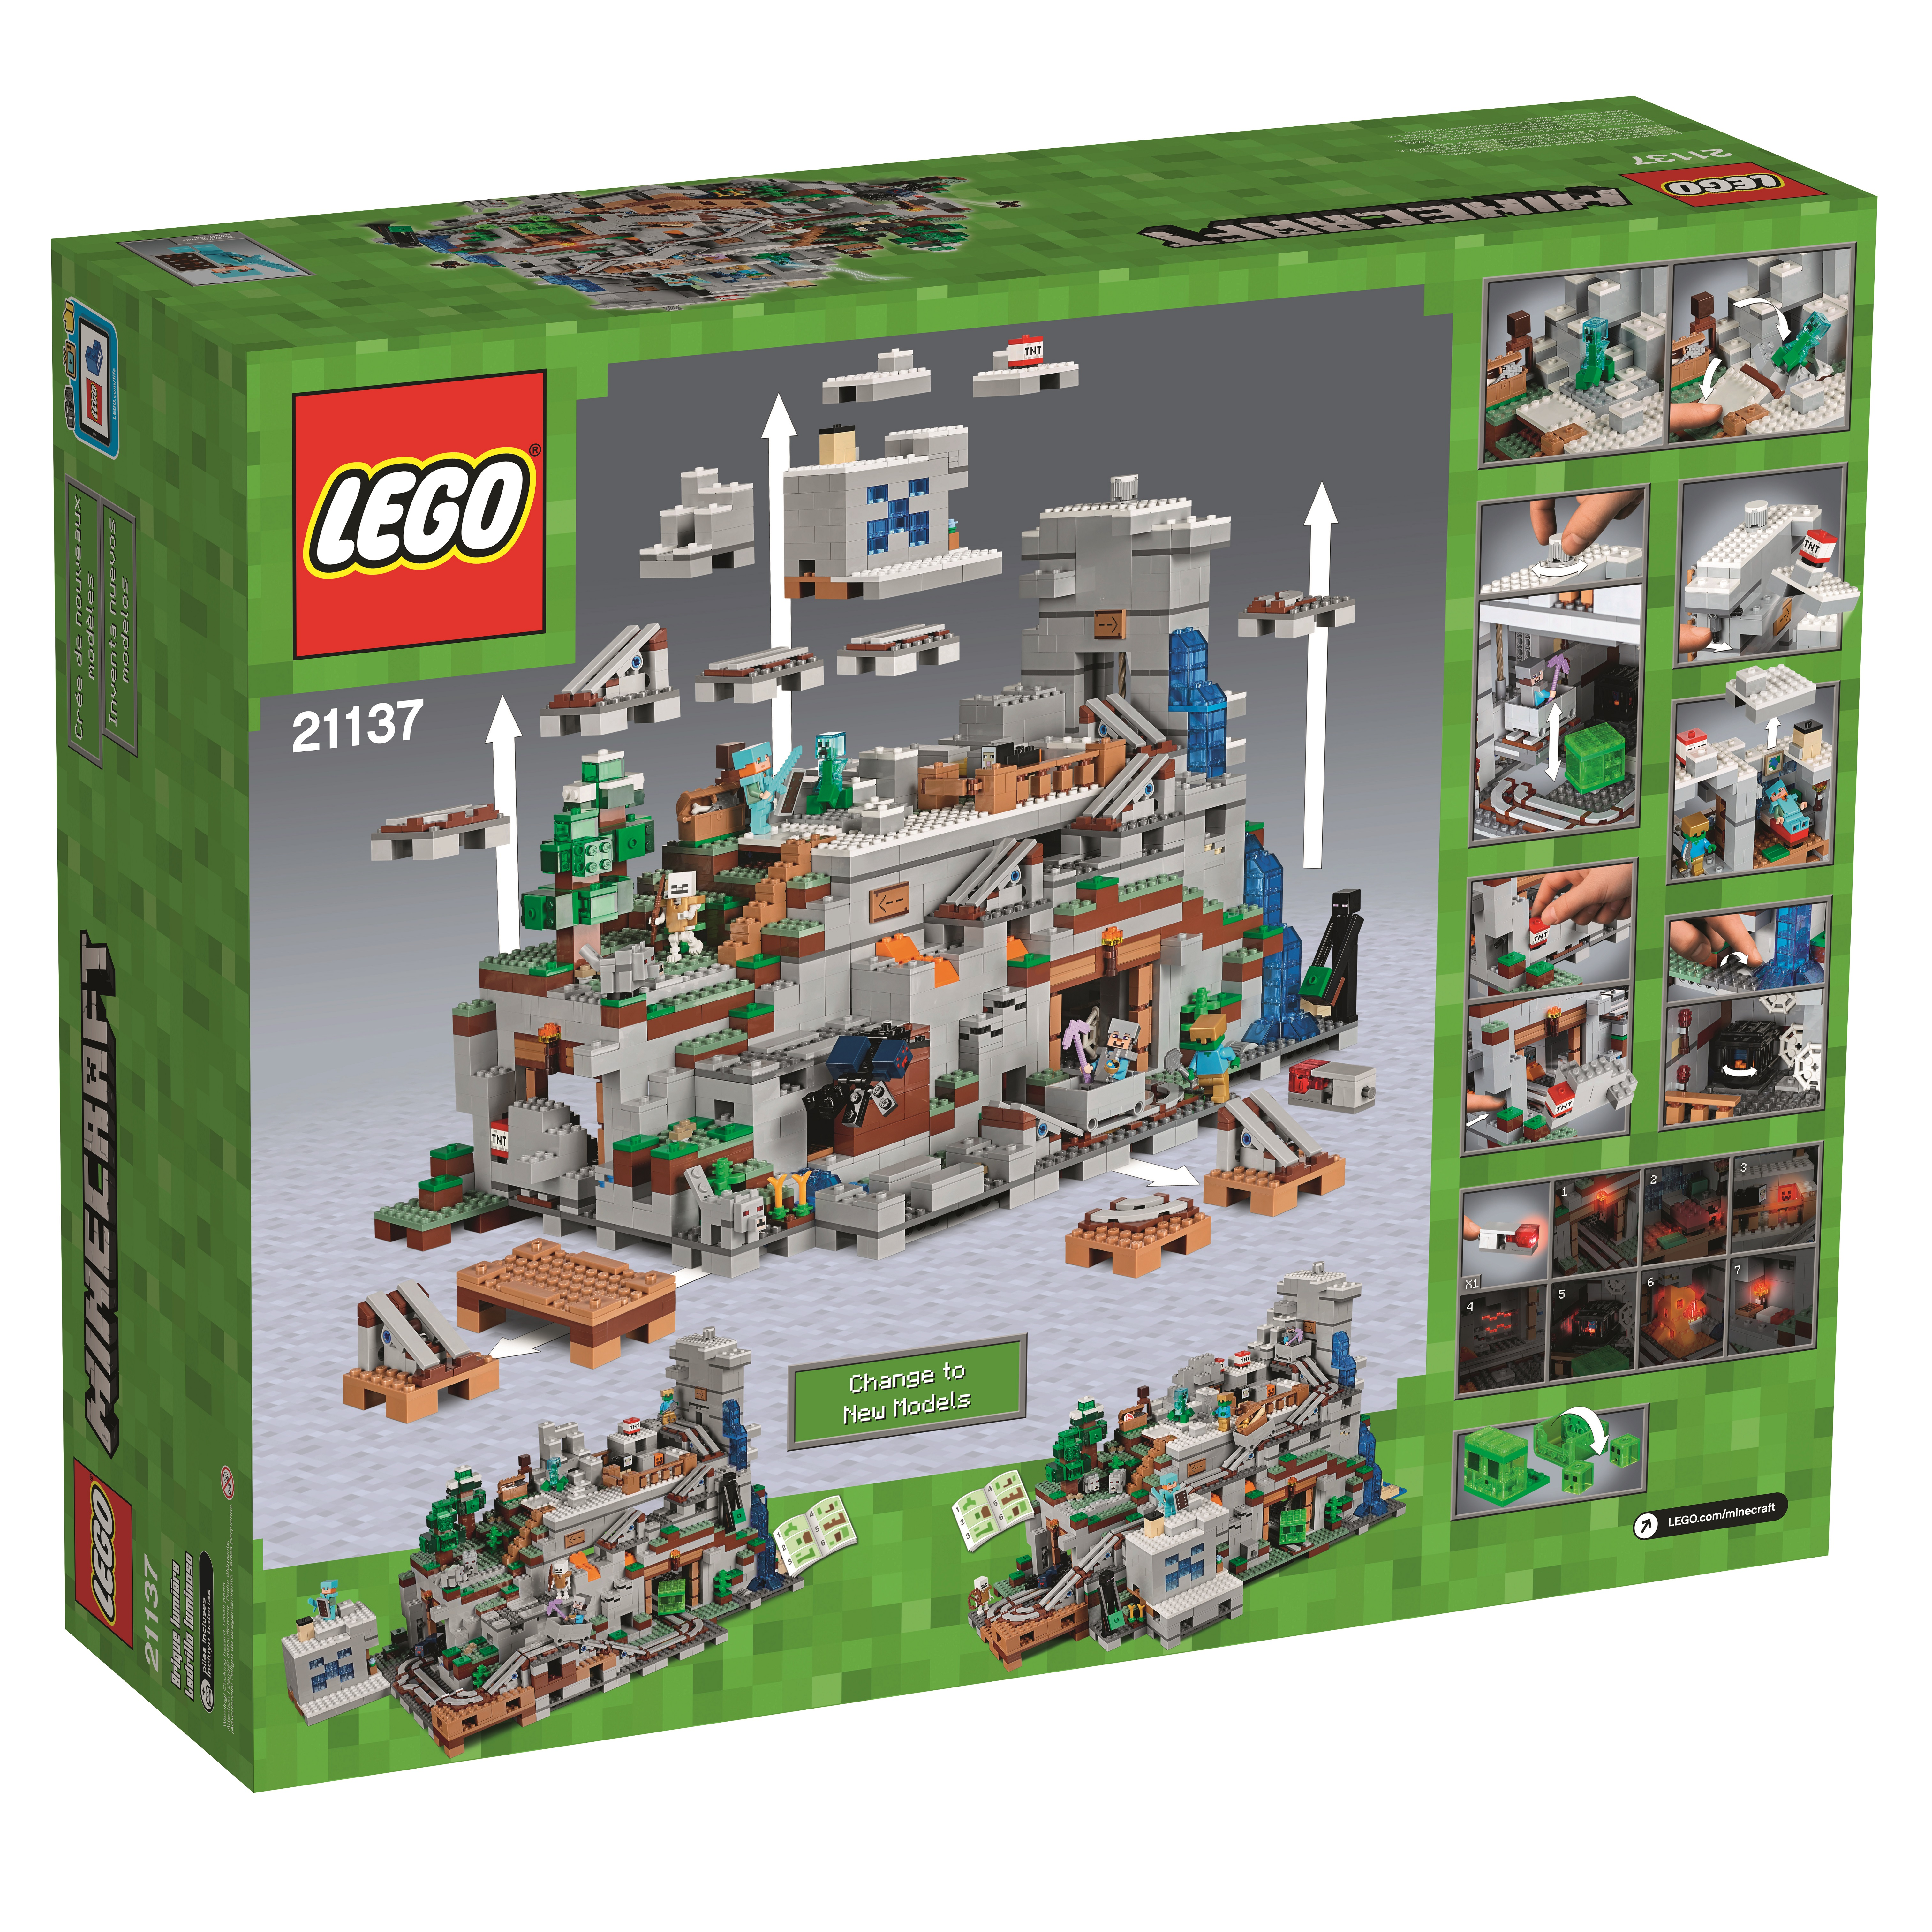 10 The Mountain Cave is the biggest Minecraft LEGO set yet